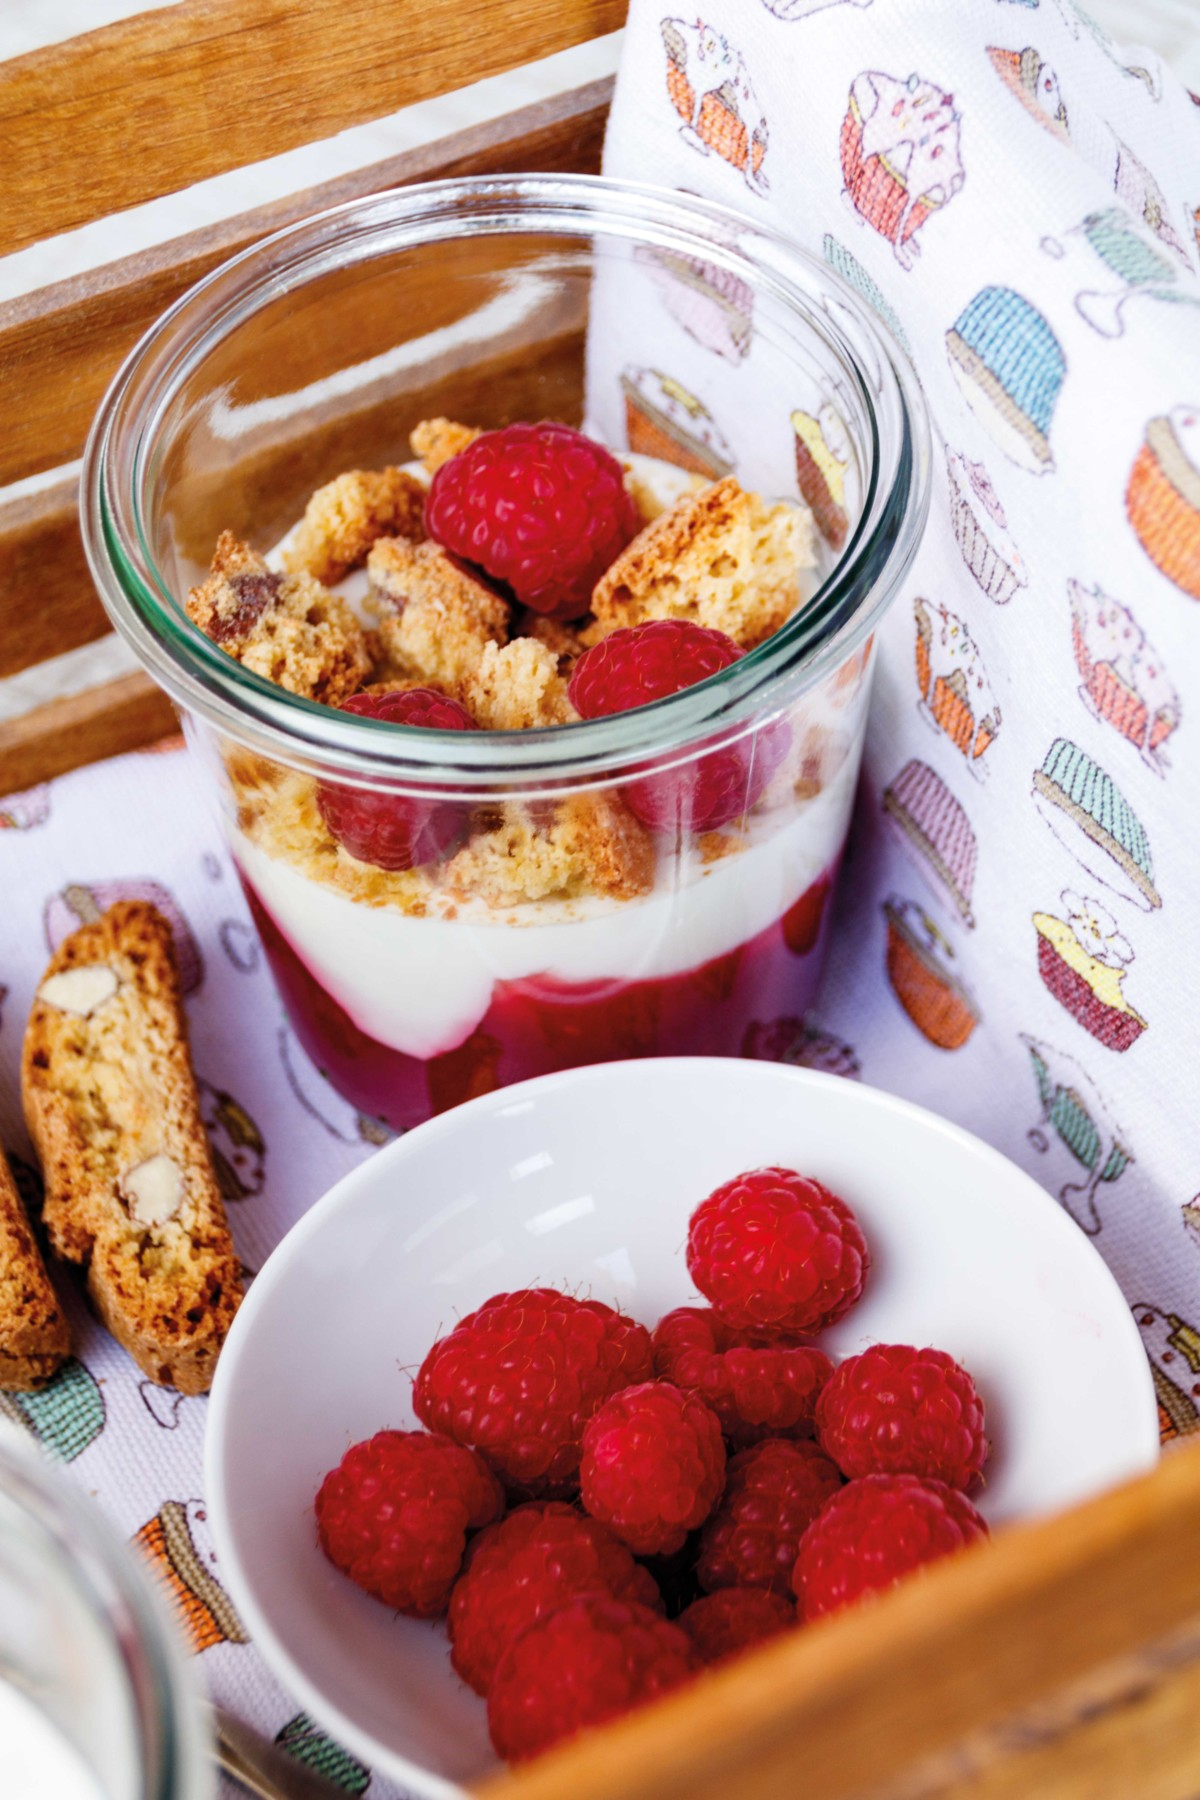 Himbeer Dessert mit Cantuccini // Strawberry and Cantuccini Dessert by http://babyrockmyday.com/himbeer-dessert-mit-cantuccini/